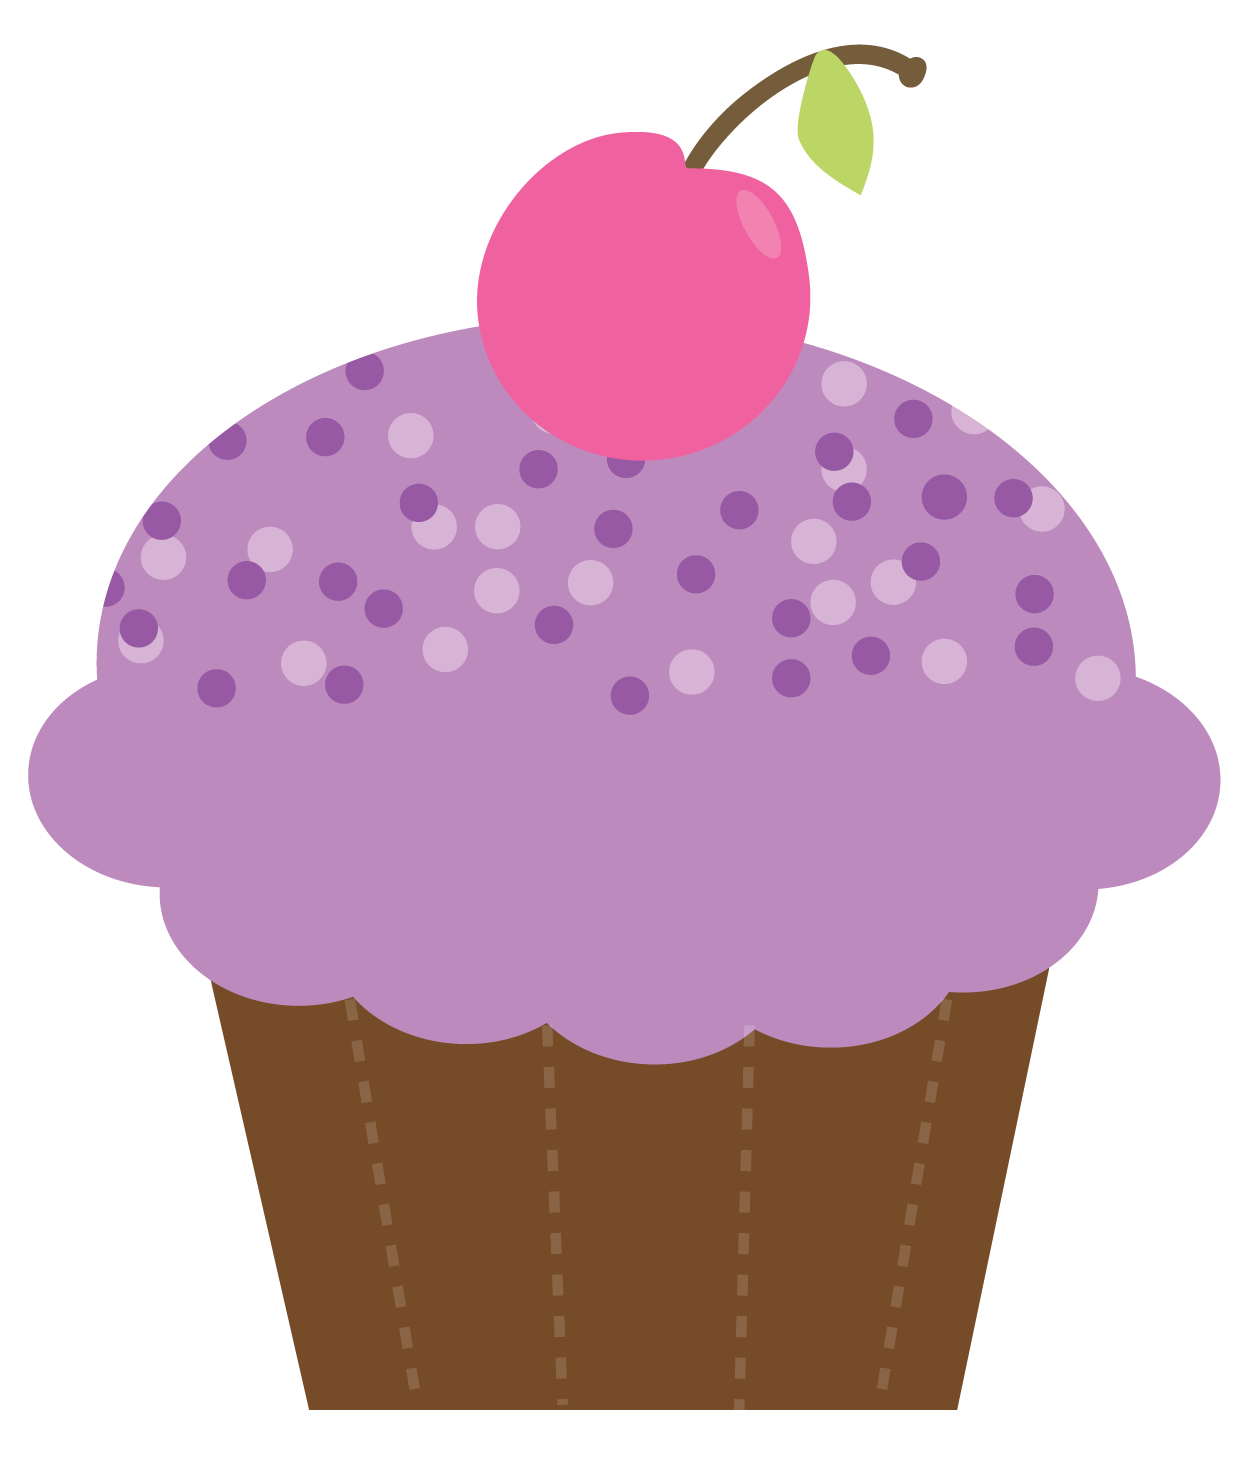 clip art stock Muffins clipart january. Tonya s treats for.